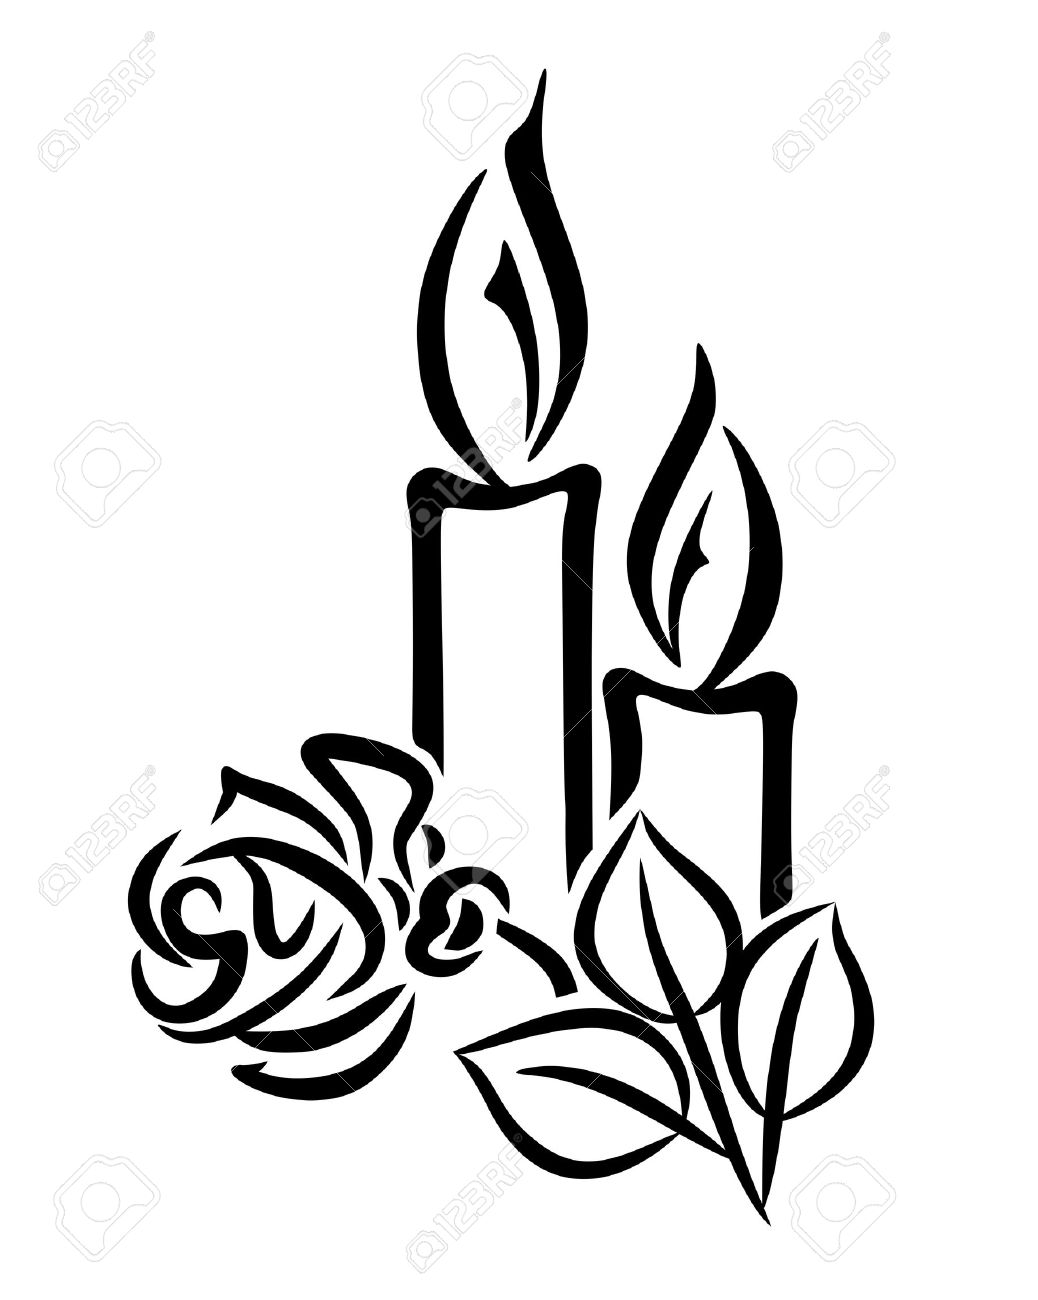 2645 Candles free clipart.